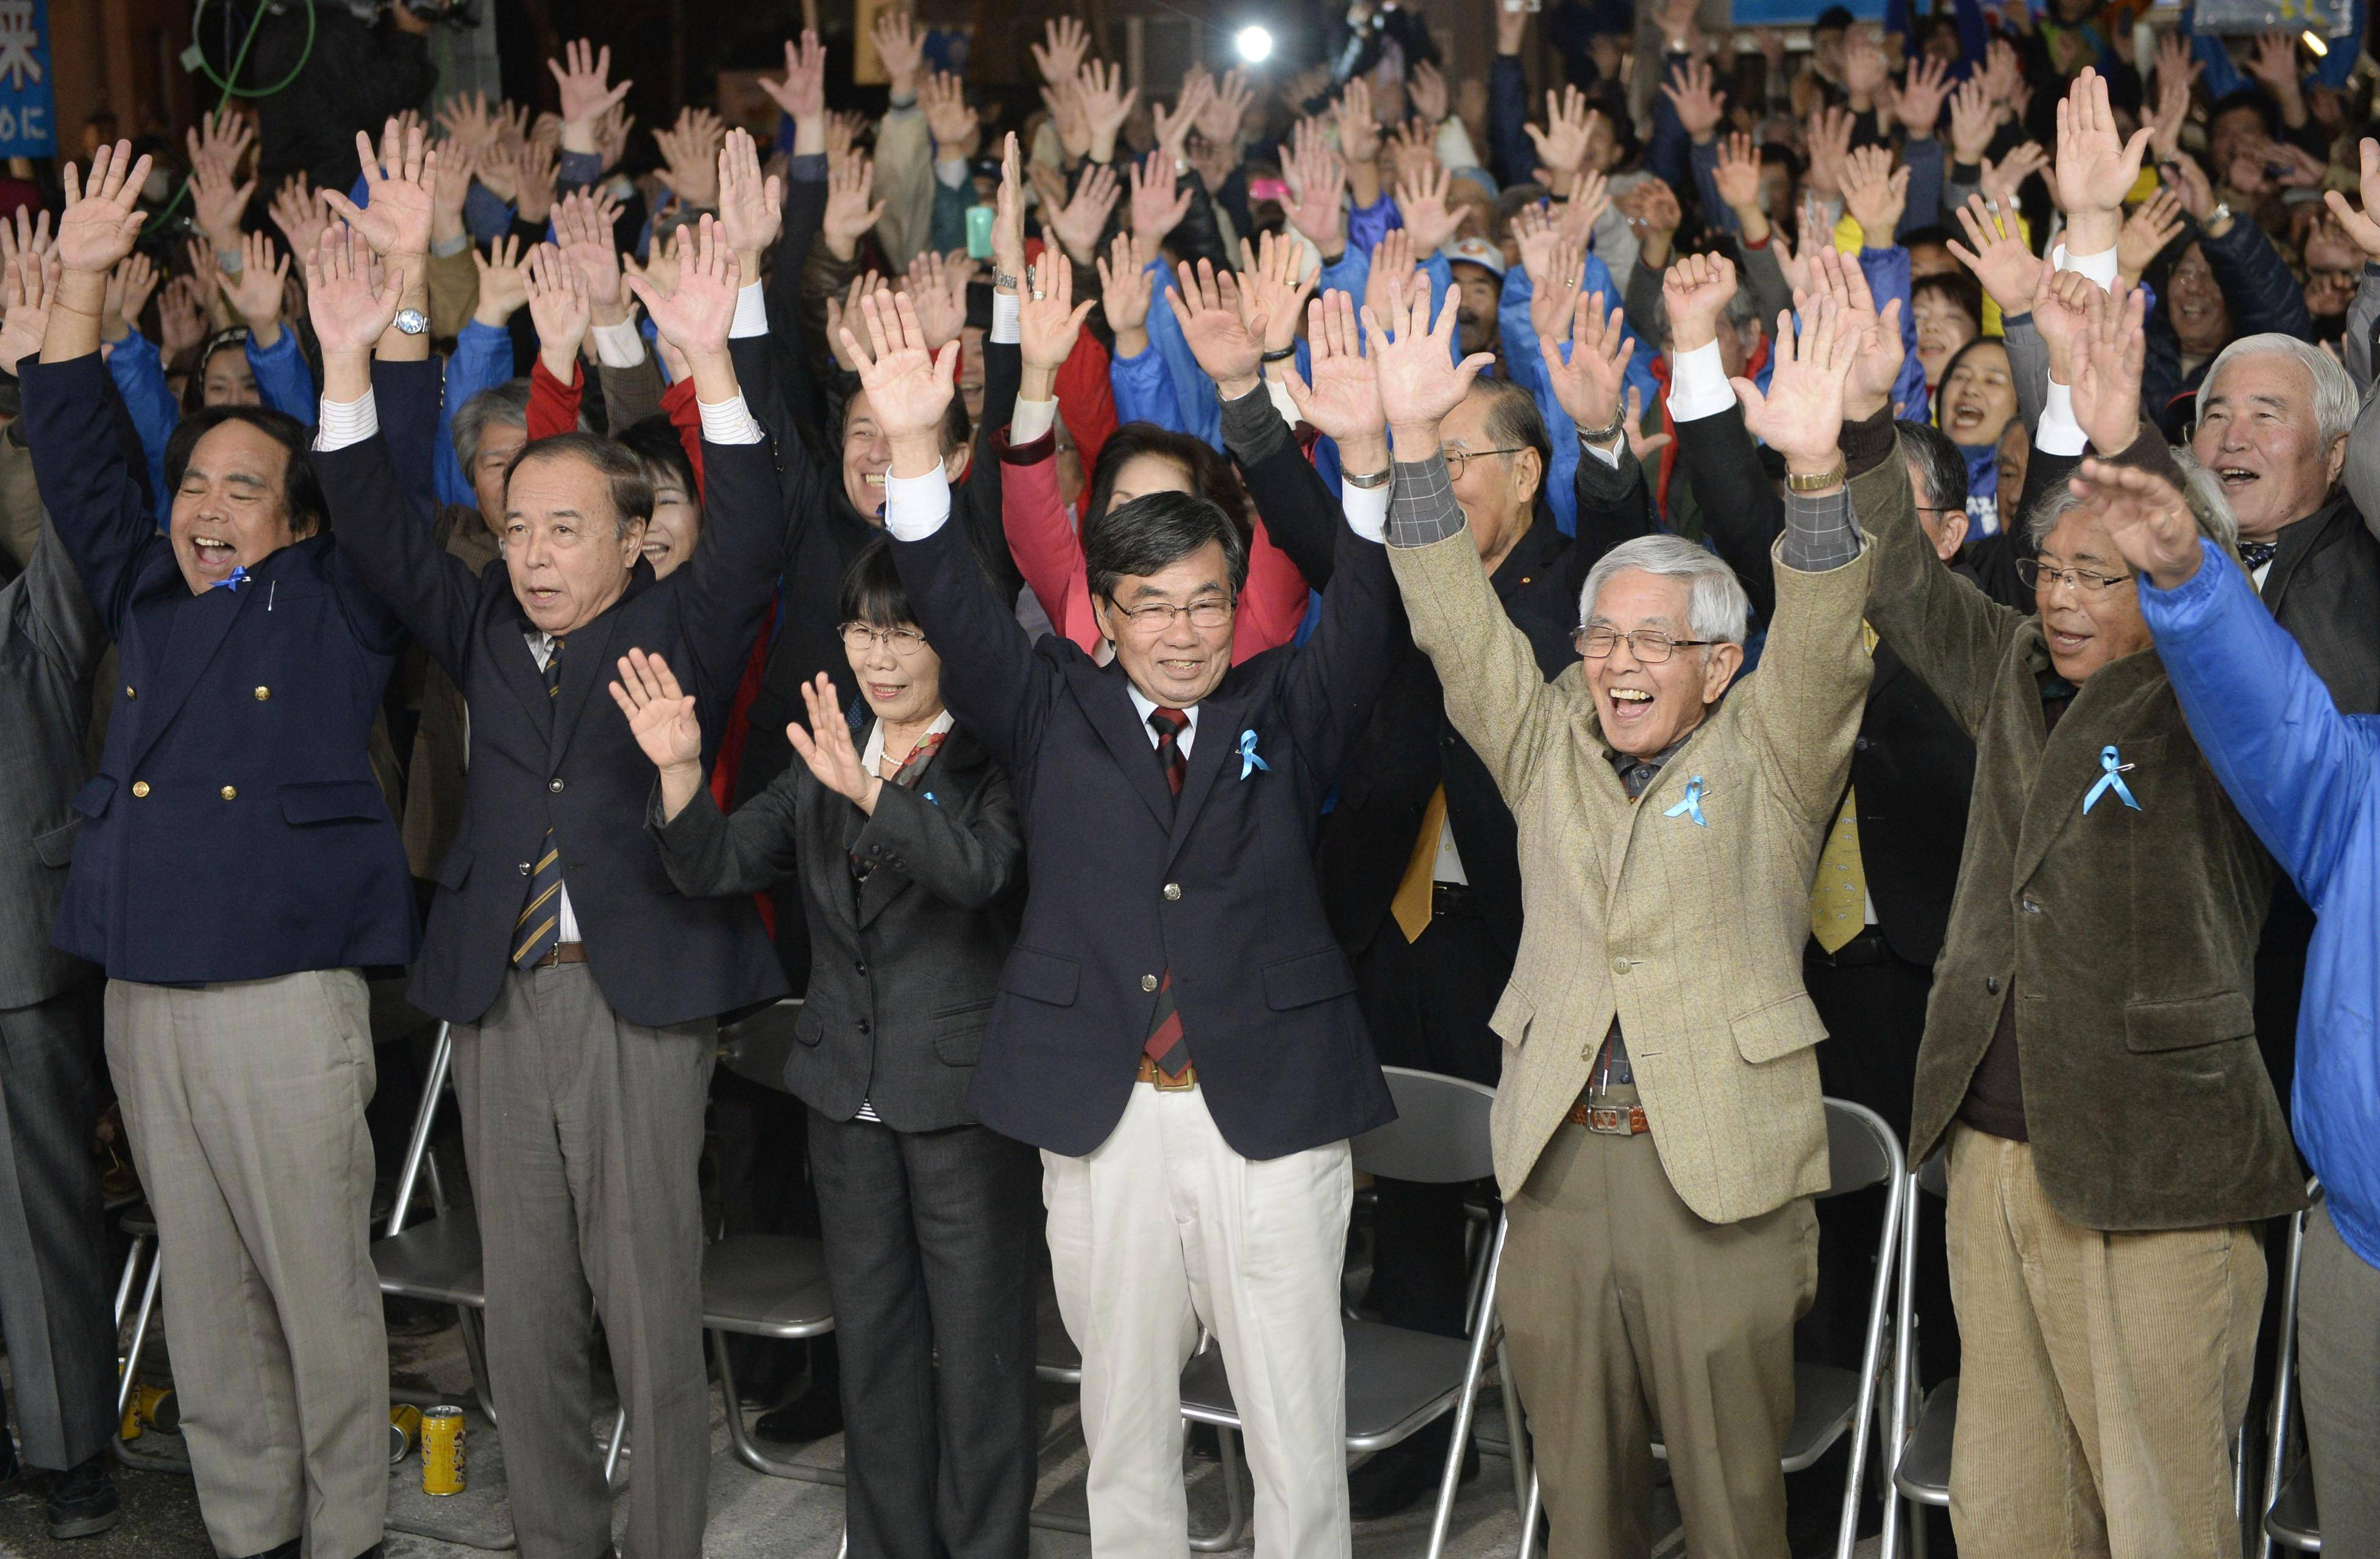 Here to stay: Mayor Susumu Inamine (center) celebrates his victory Sunday night after winning re-election in Nago, Okinawa Prefecture. | KYODO